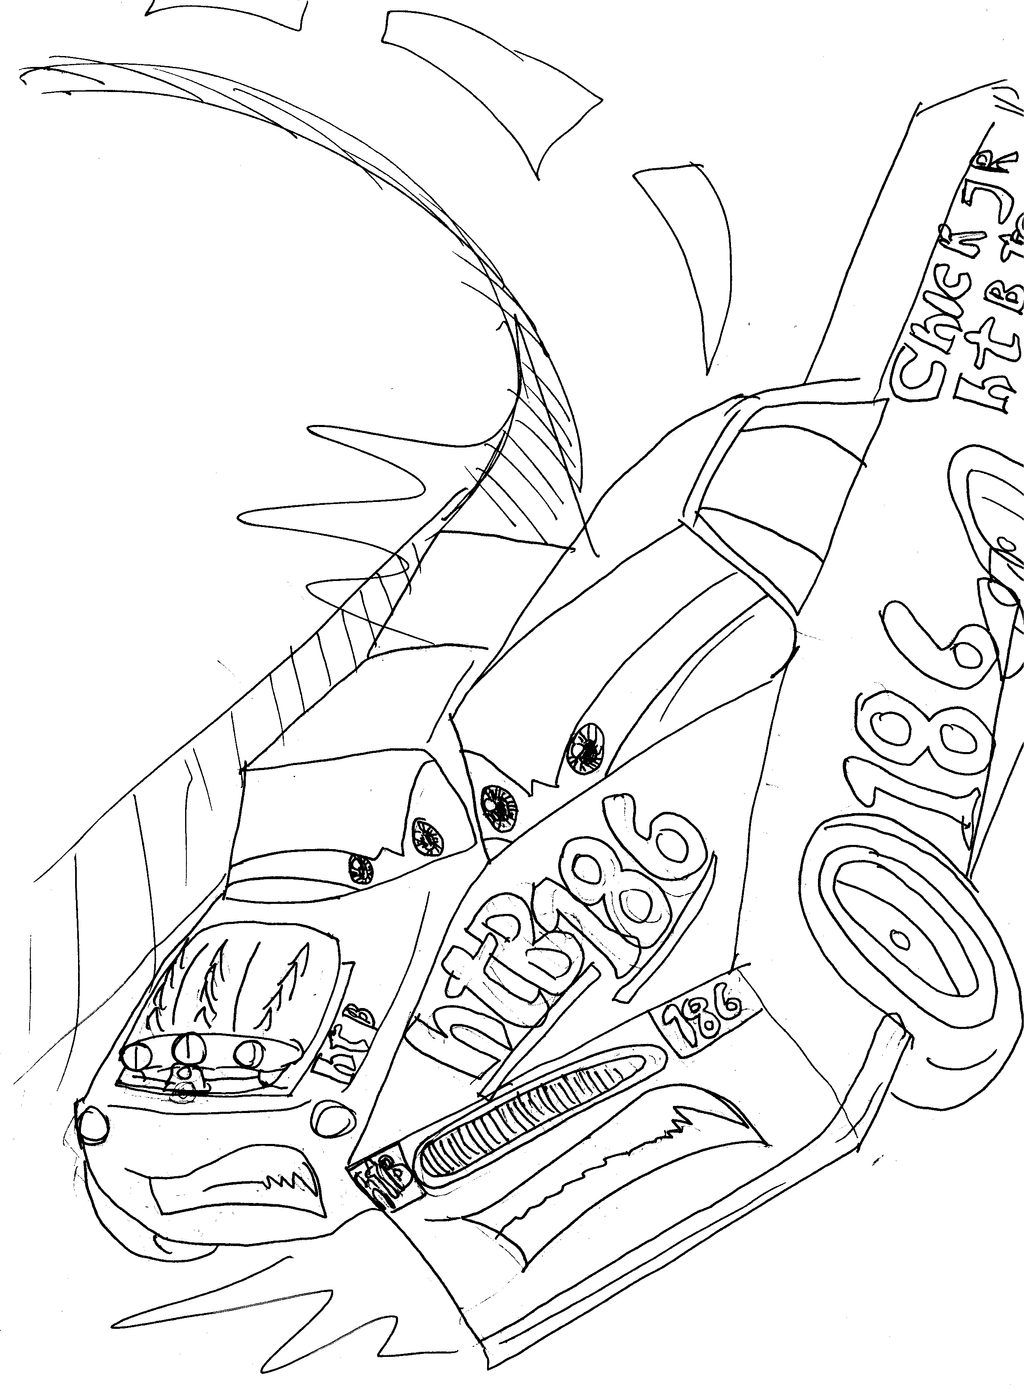 snot rod coloring pages - photo#13